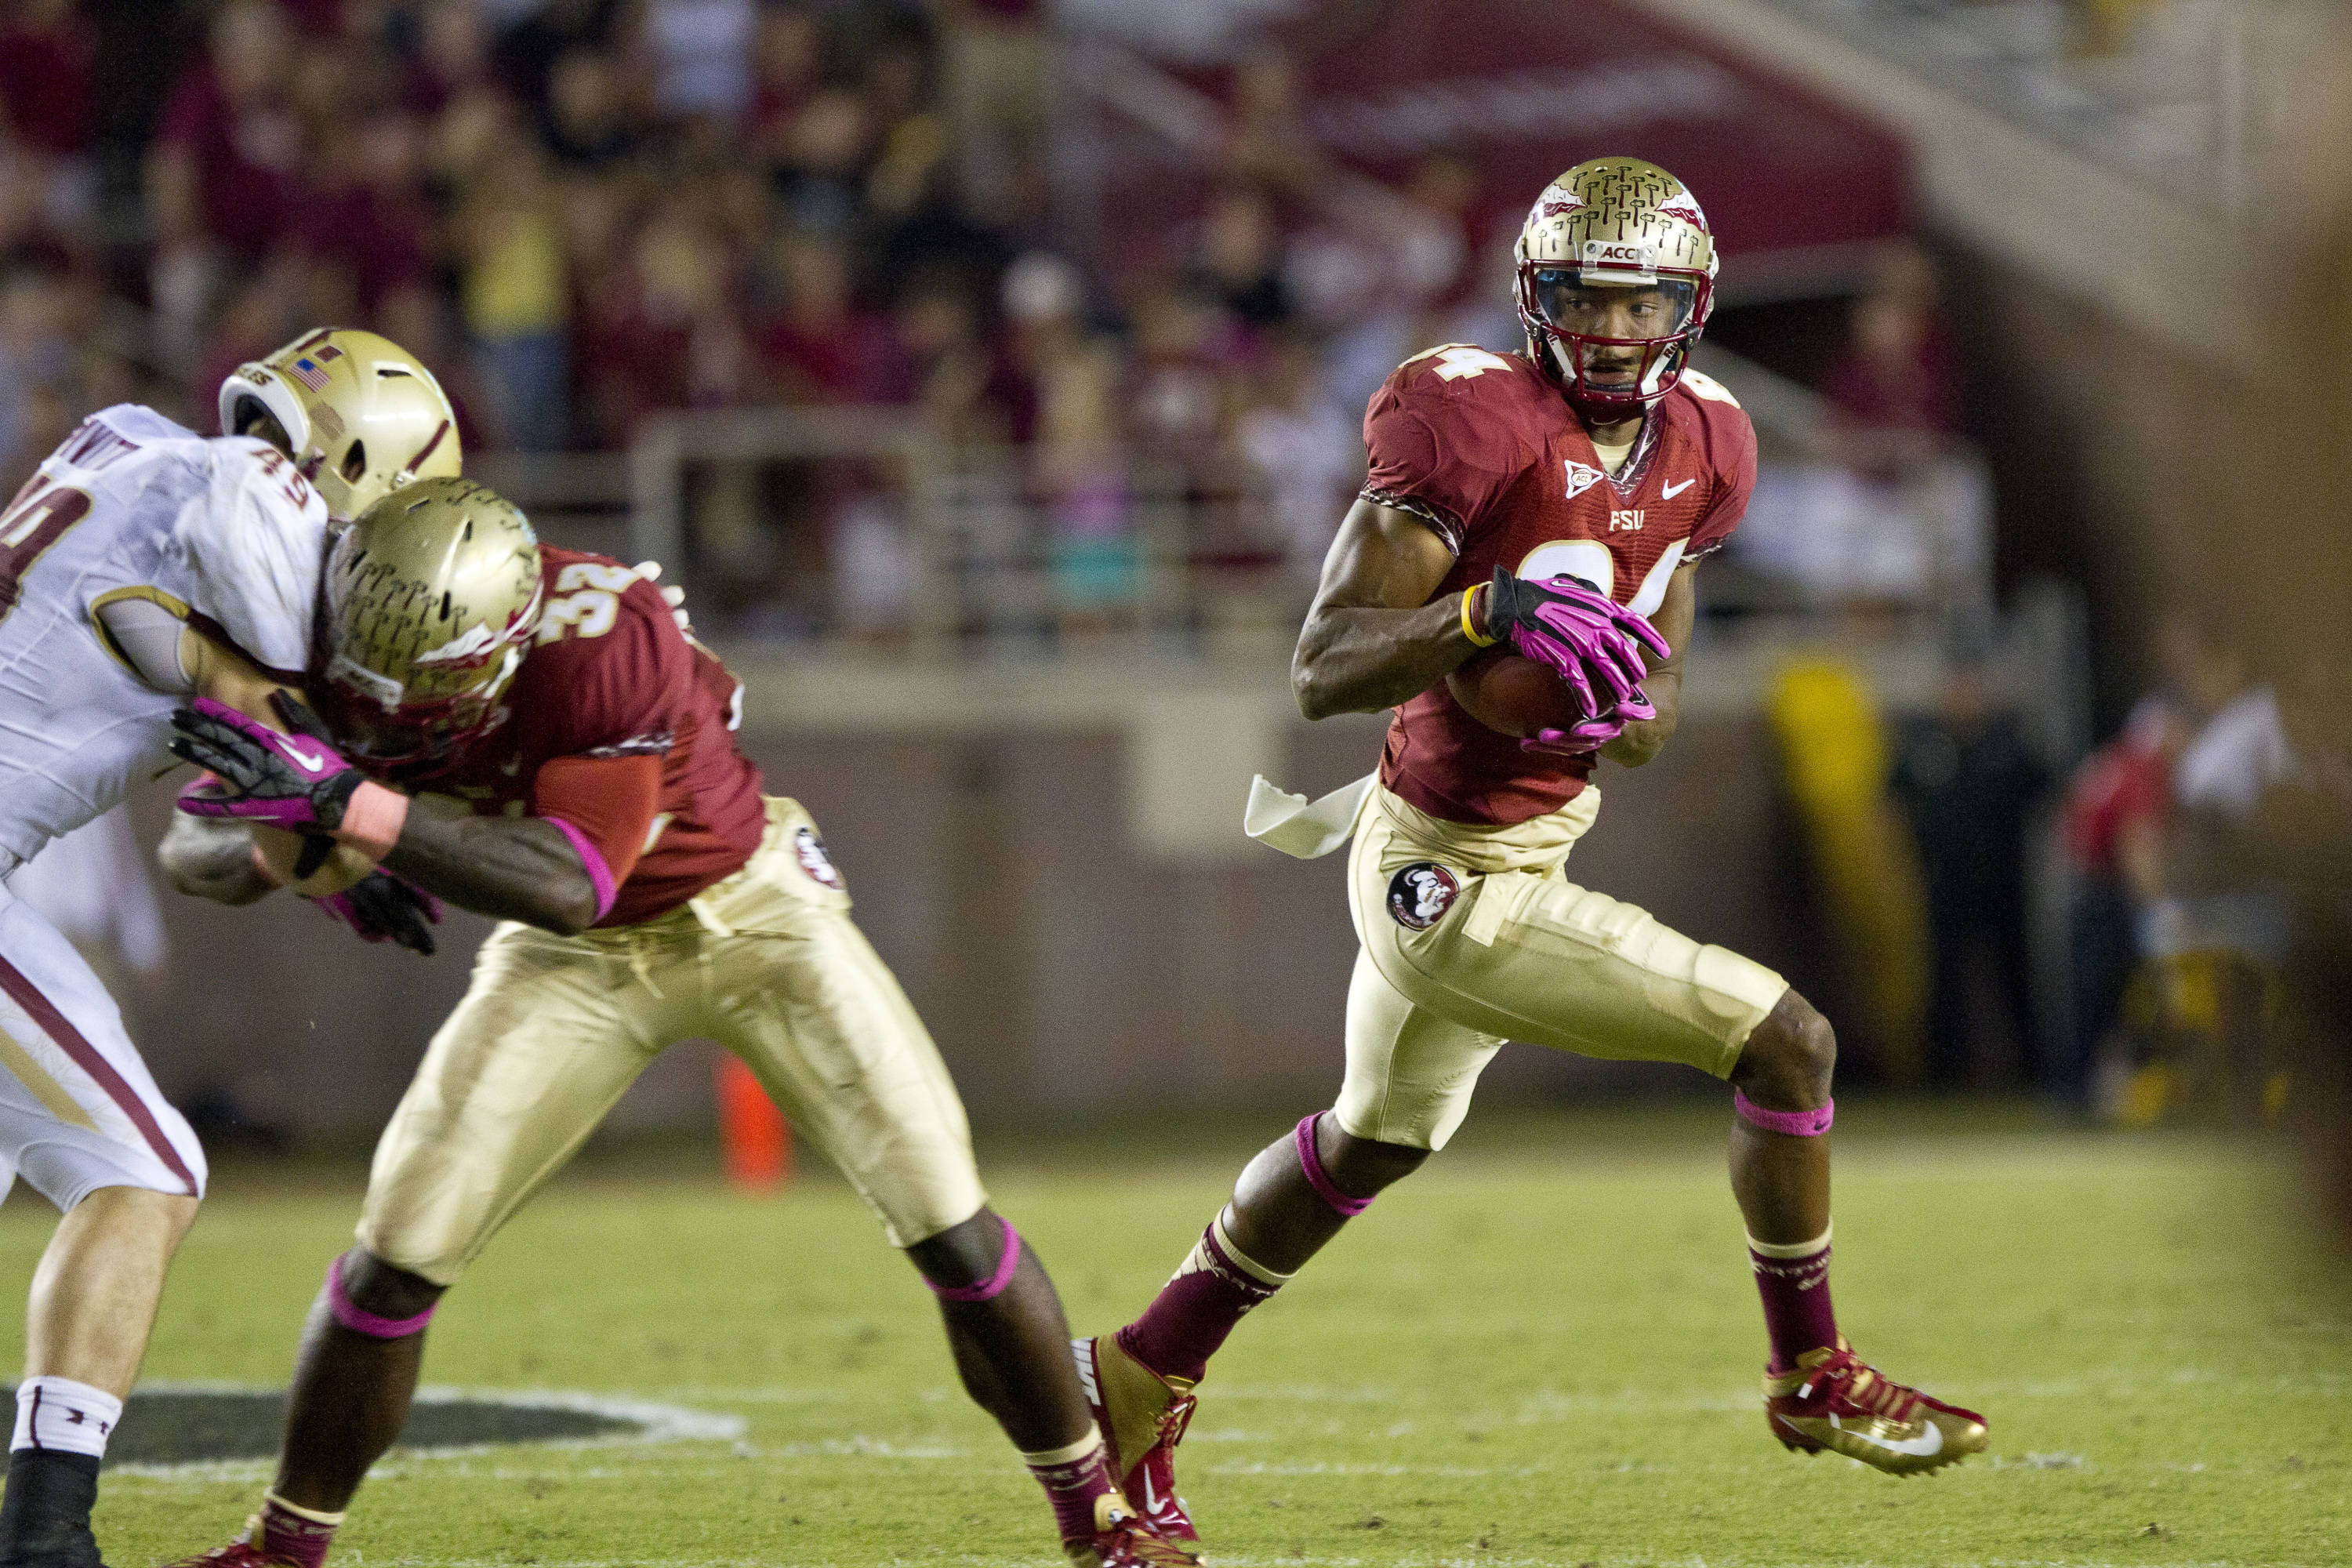 Rodney Smith (84) carries the ball during the FSU vs Boston College football game on October 13, 2012 in Tallahassee, Fla.